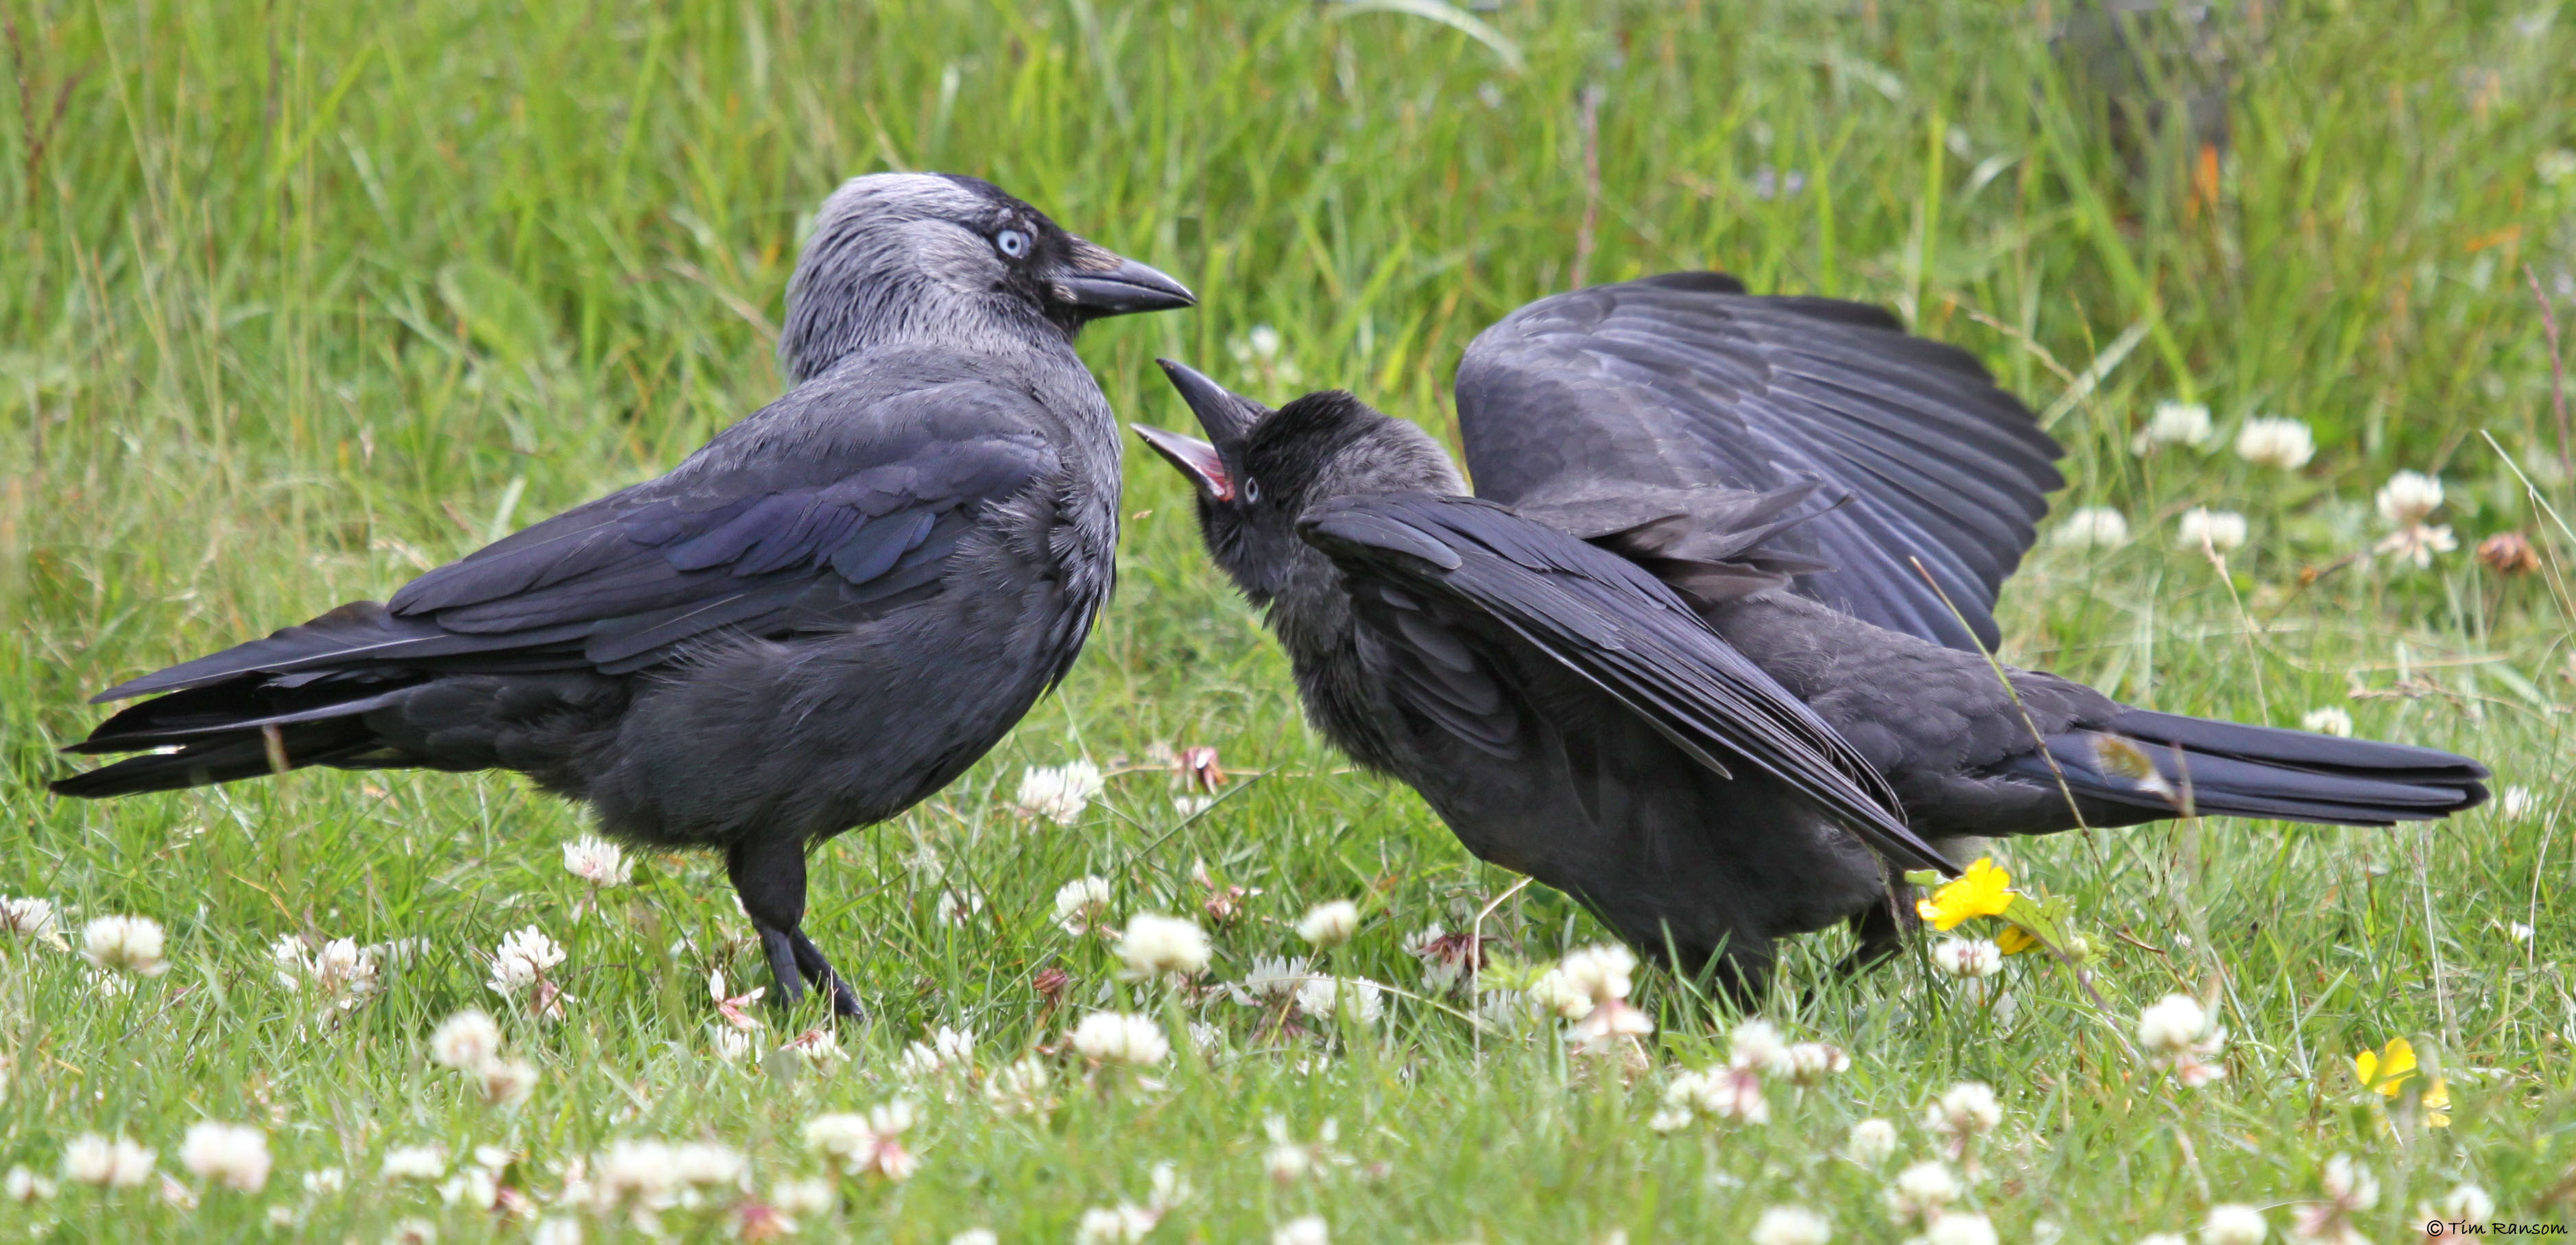 Jackdaw in Jersey. Photo by Tim Ransom.